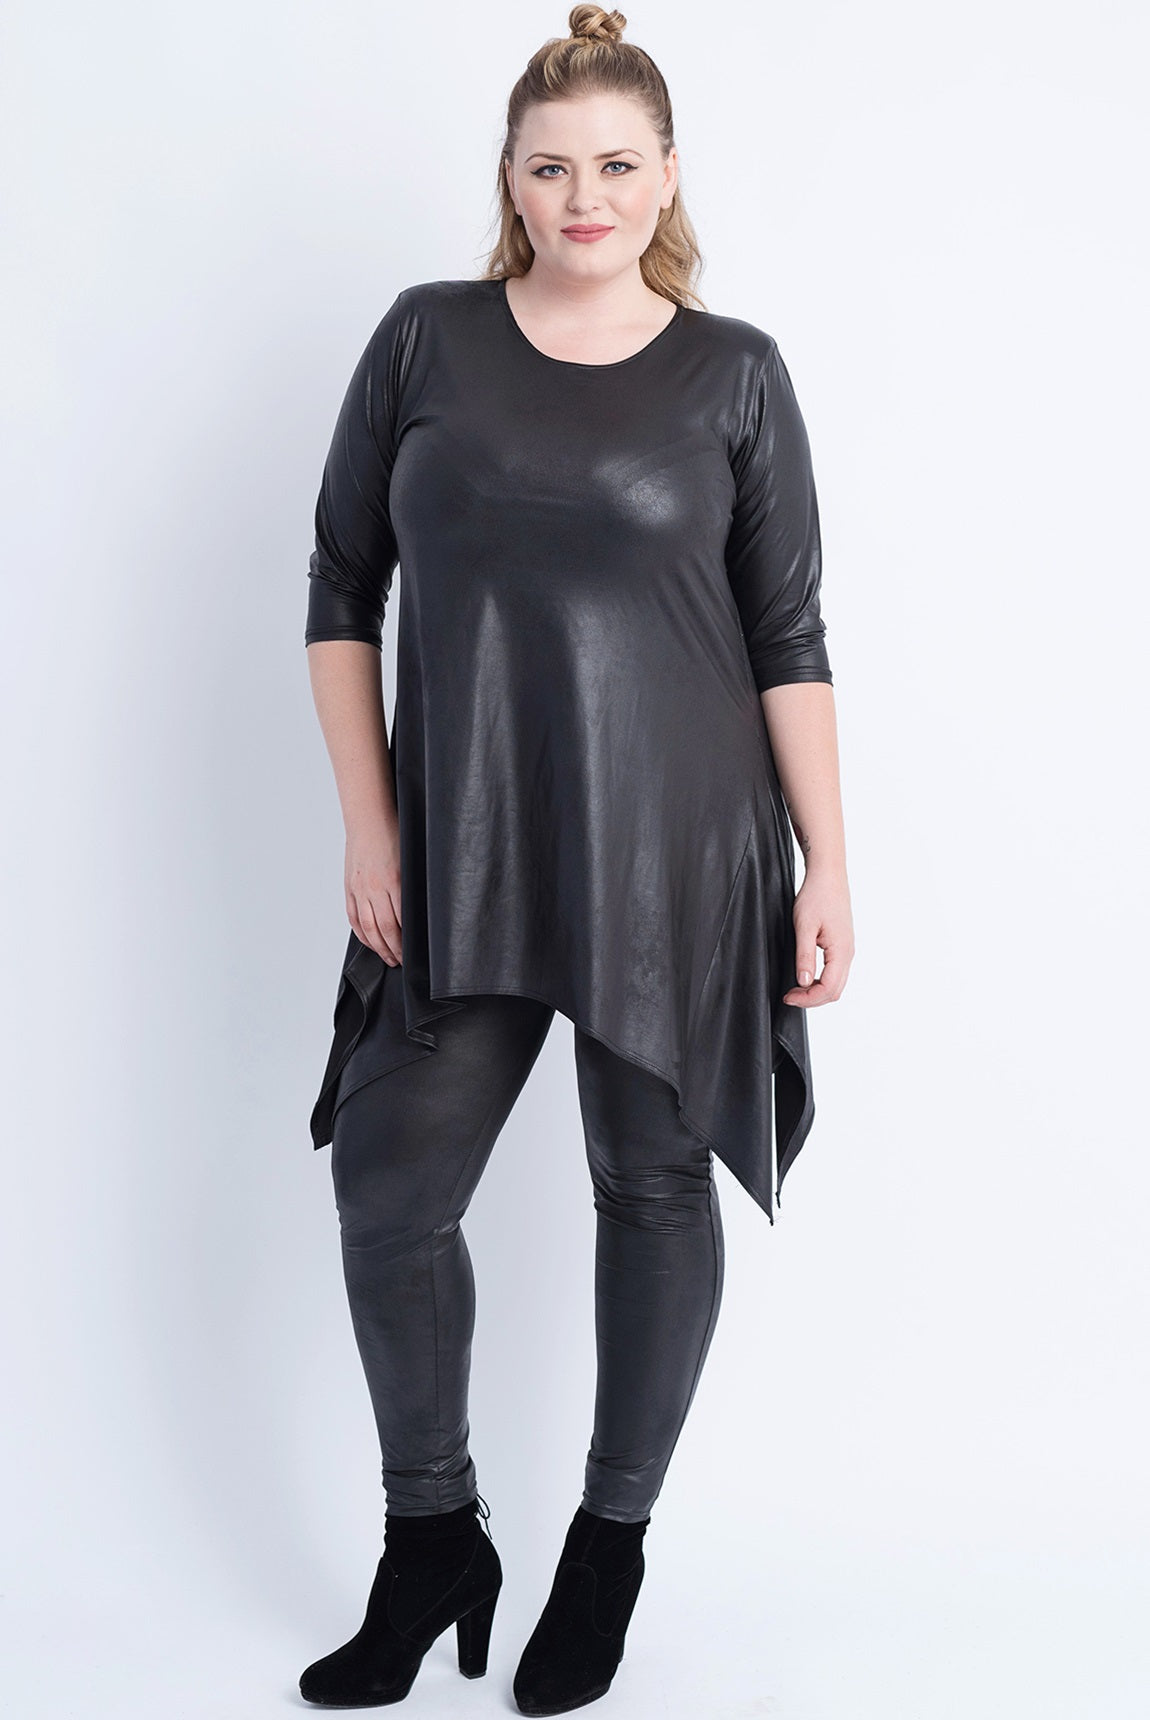 Sharkbite Tunic - Leather Look Black